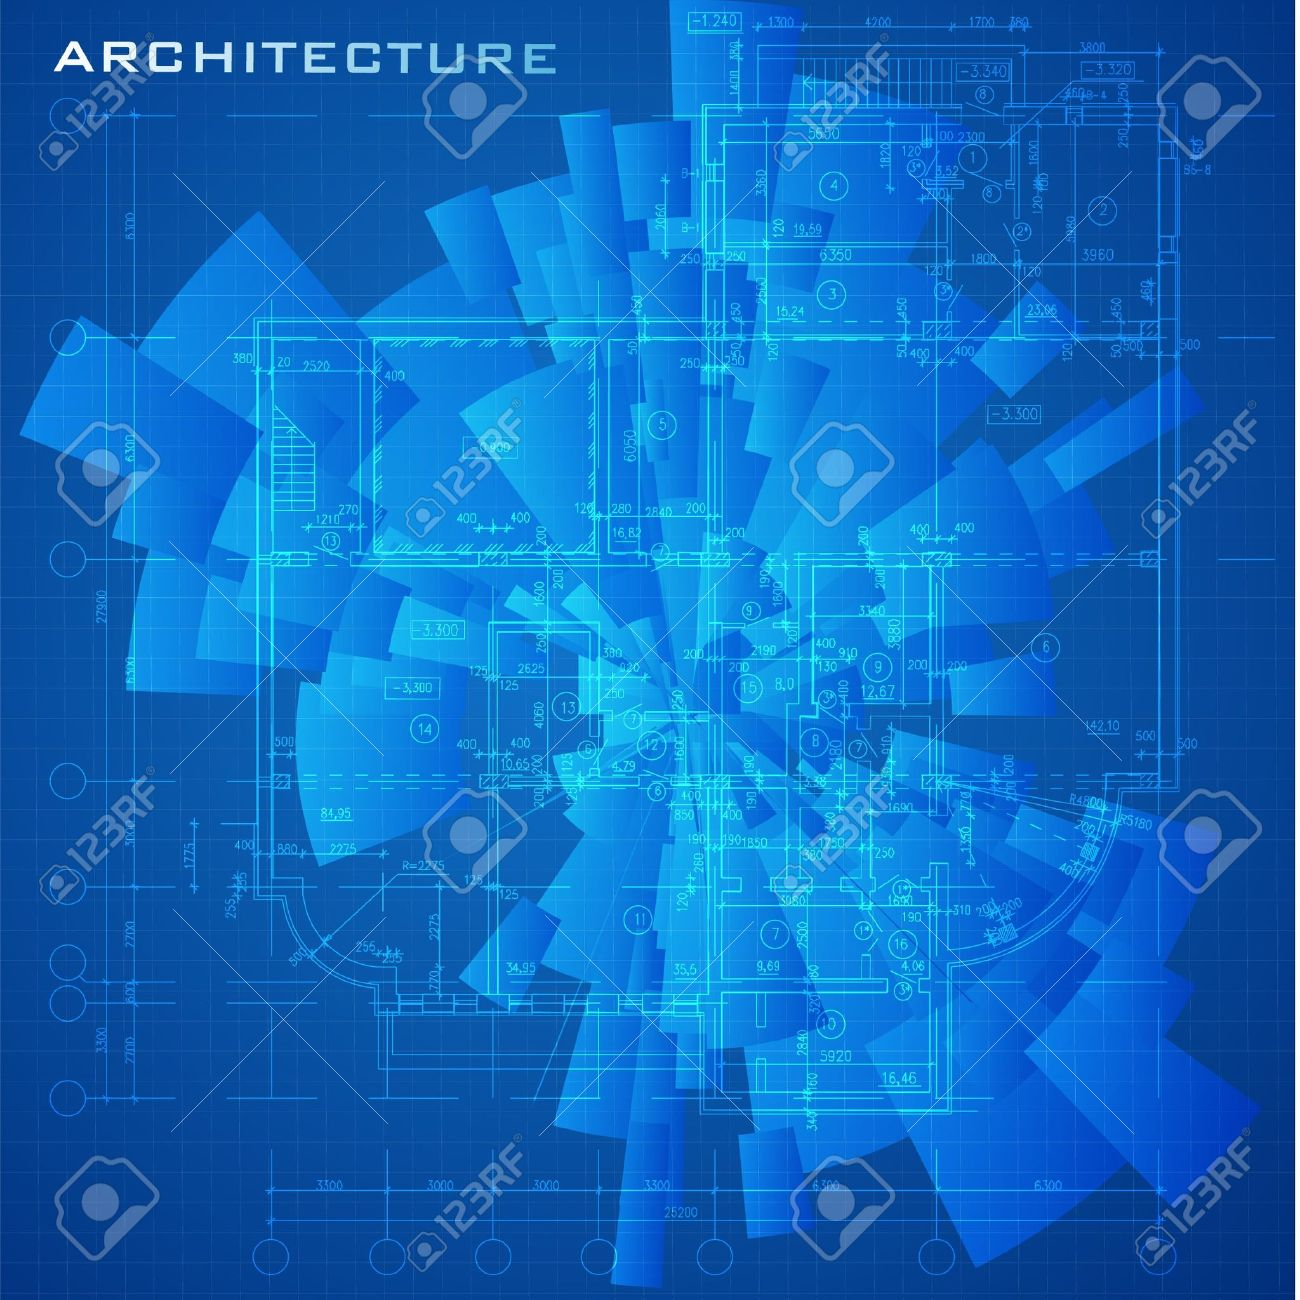 Abstract Futuristic Architectural Design Urban Blueprint